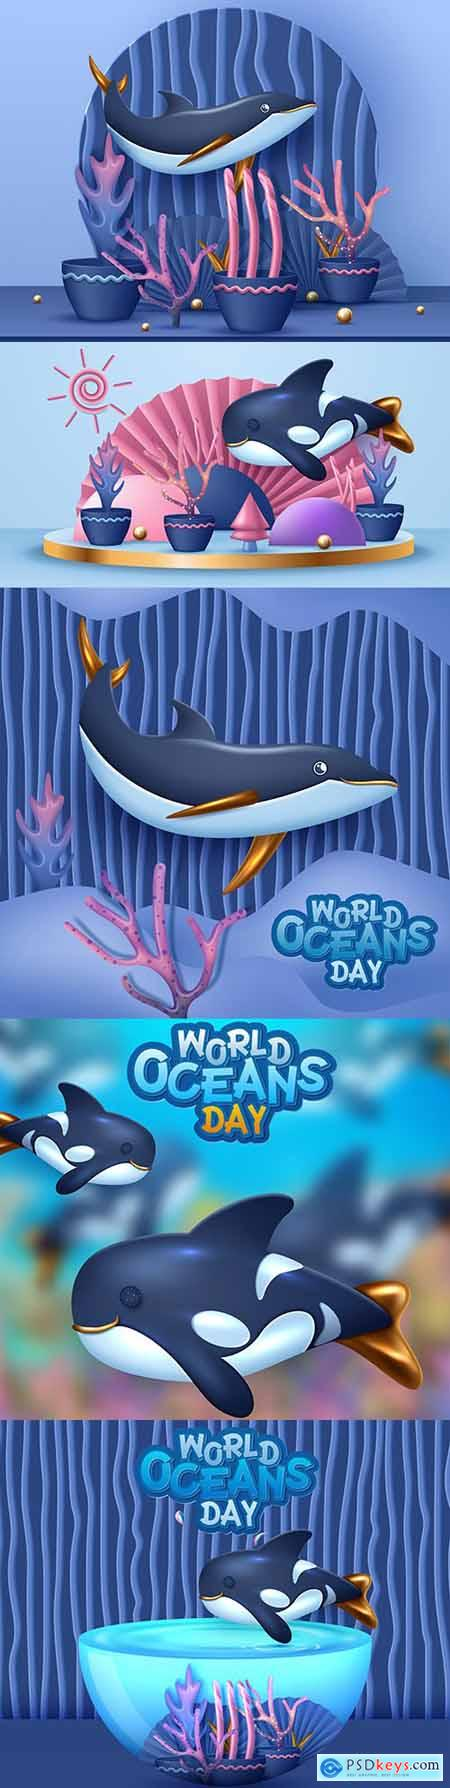 World ocean day with marine dwellers cartoon 3d illustrations